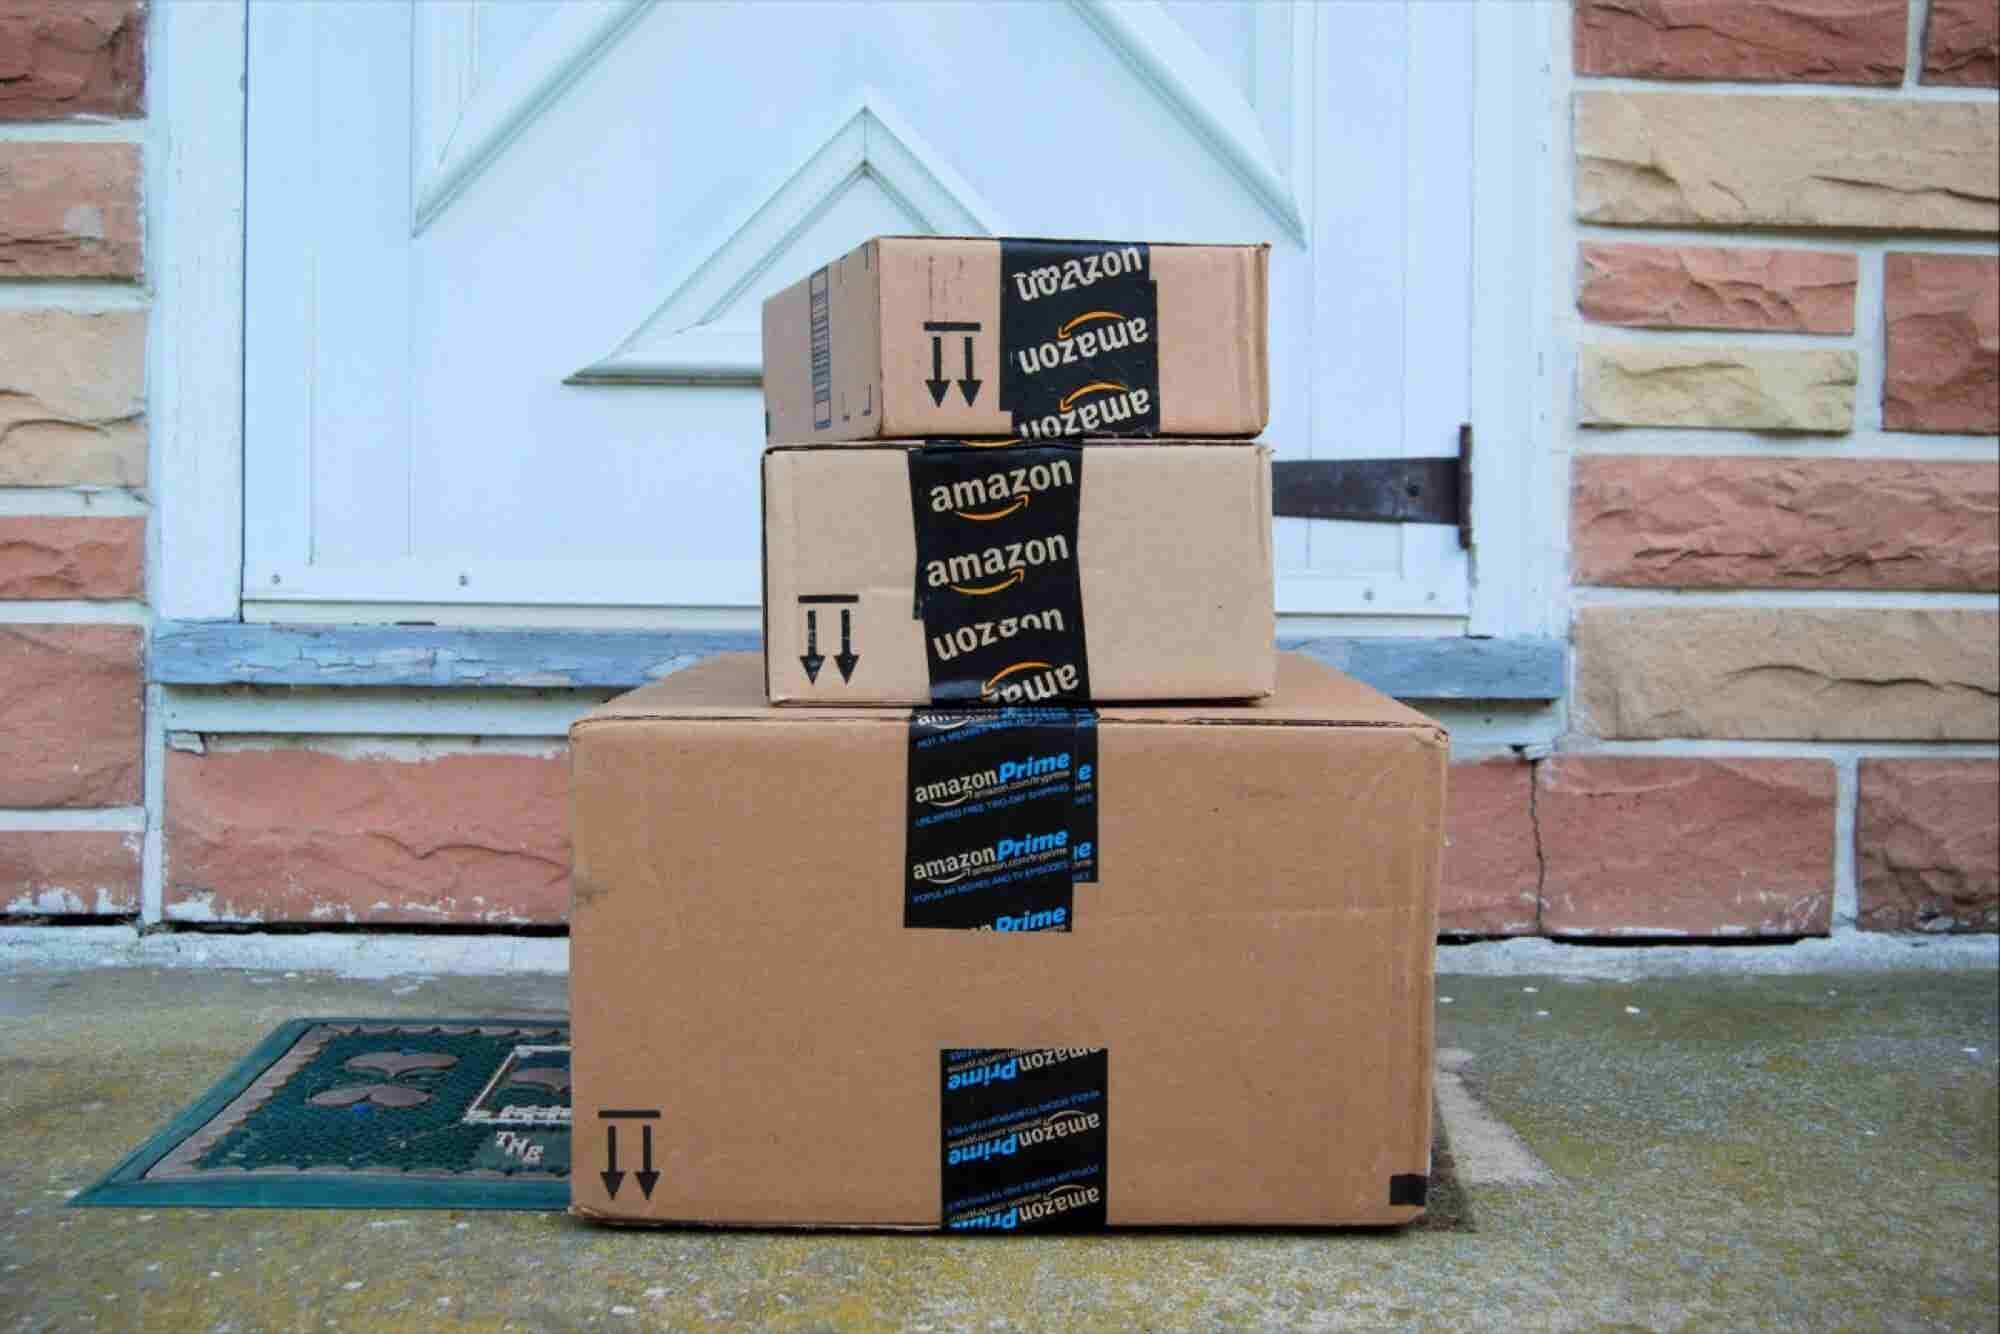 Amazon Is Cracking Down on Counterfeit Goods